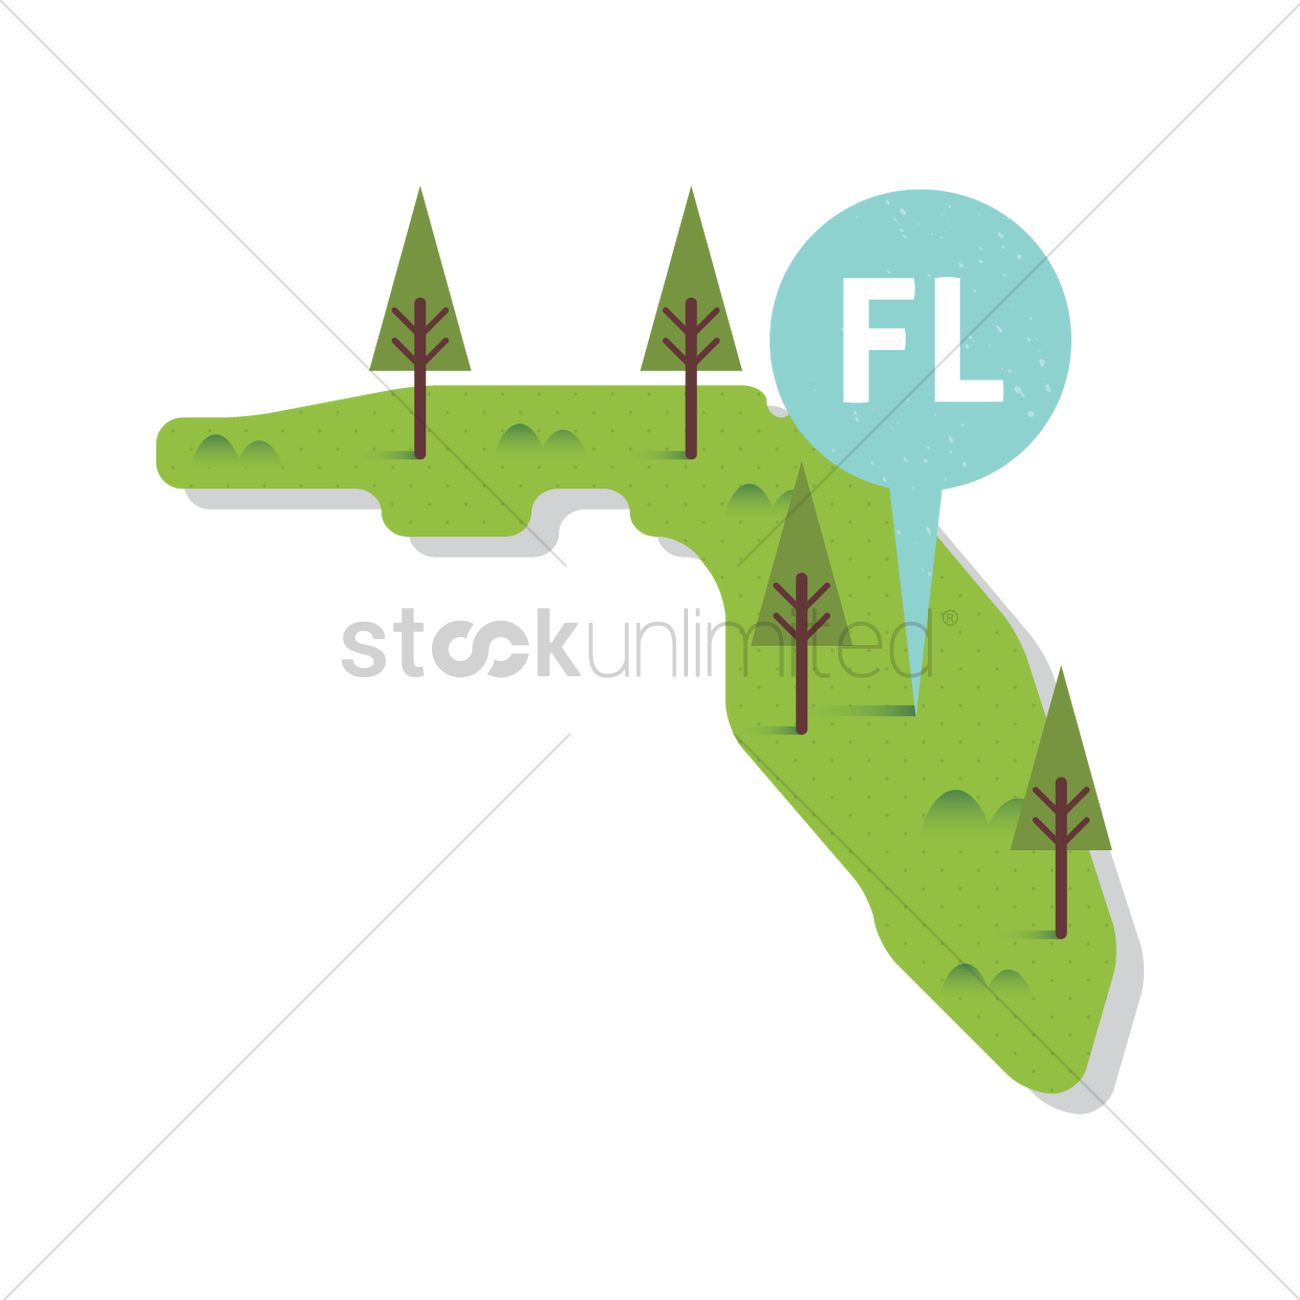 Free Florida state map Vector Image - 1557061 | StockUnlimited